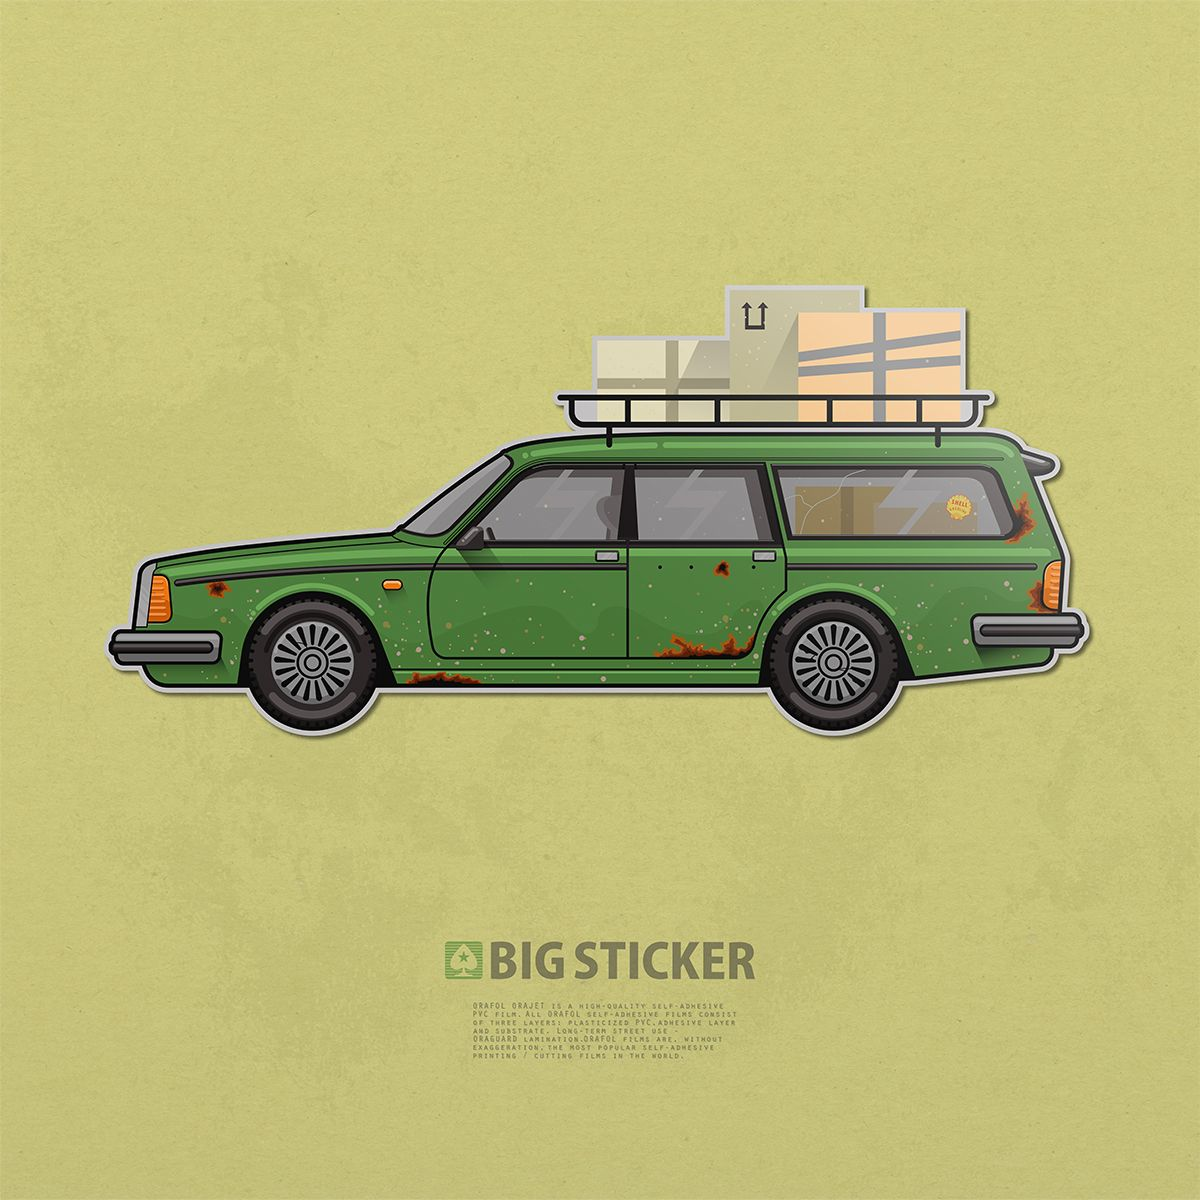 Old Car Vintage Volvo Old Moose Big Sticker Classic Car Simple Design Style Brand Stickers Stickers Sticky Labels [ 1200 x 1200 Pixel ]